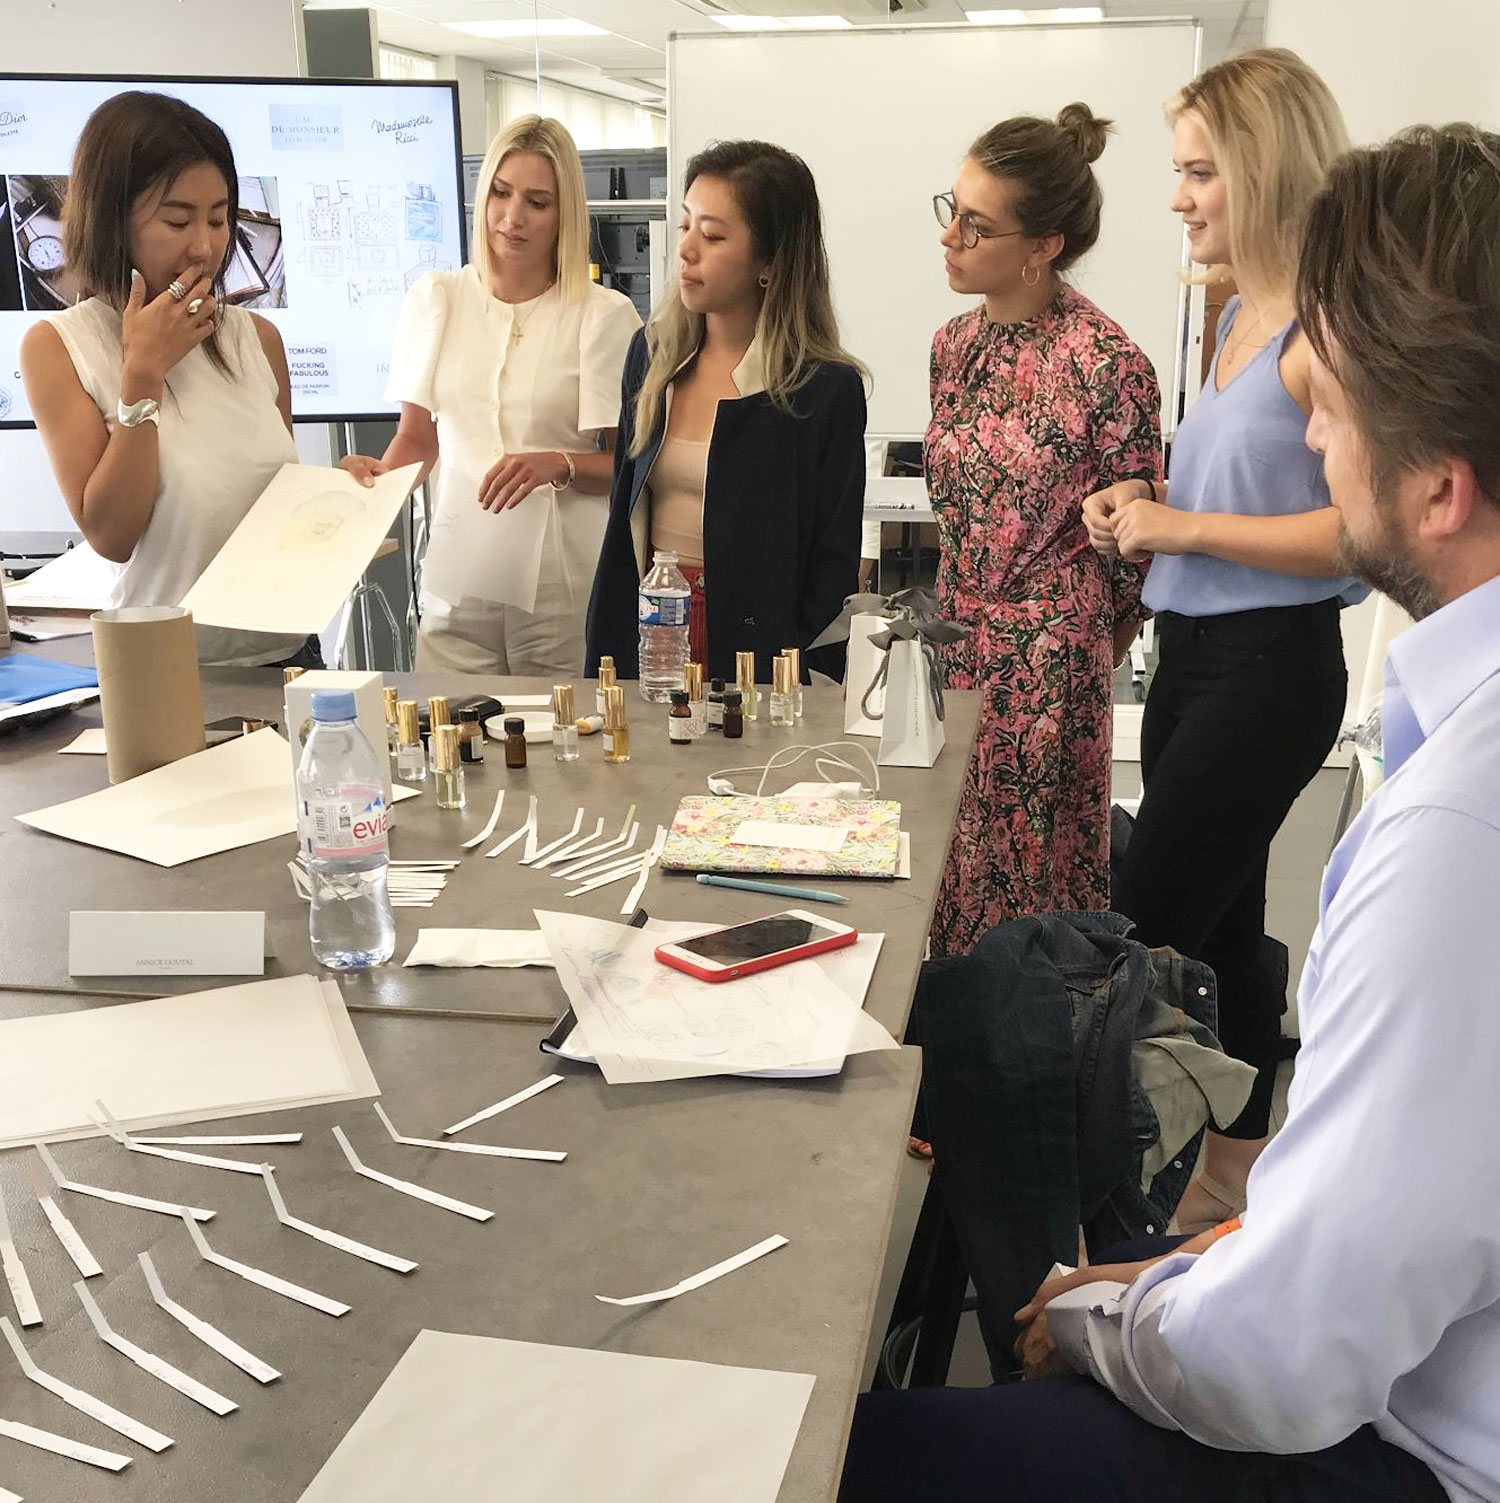 LAUNCH OF JOINT SUMMER COURSE WITH POLIMODA